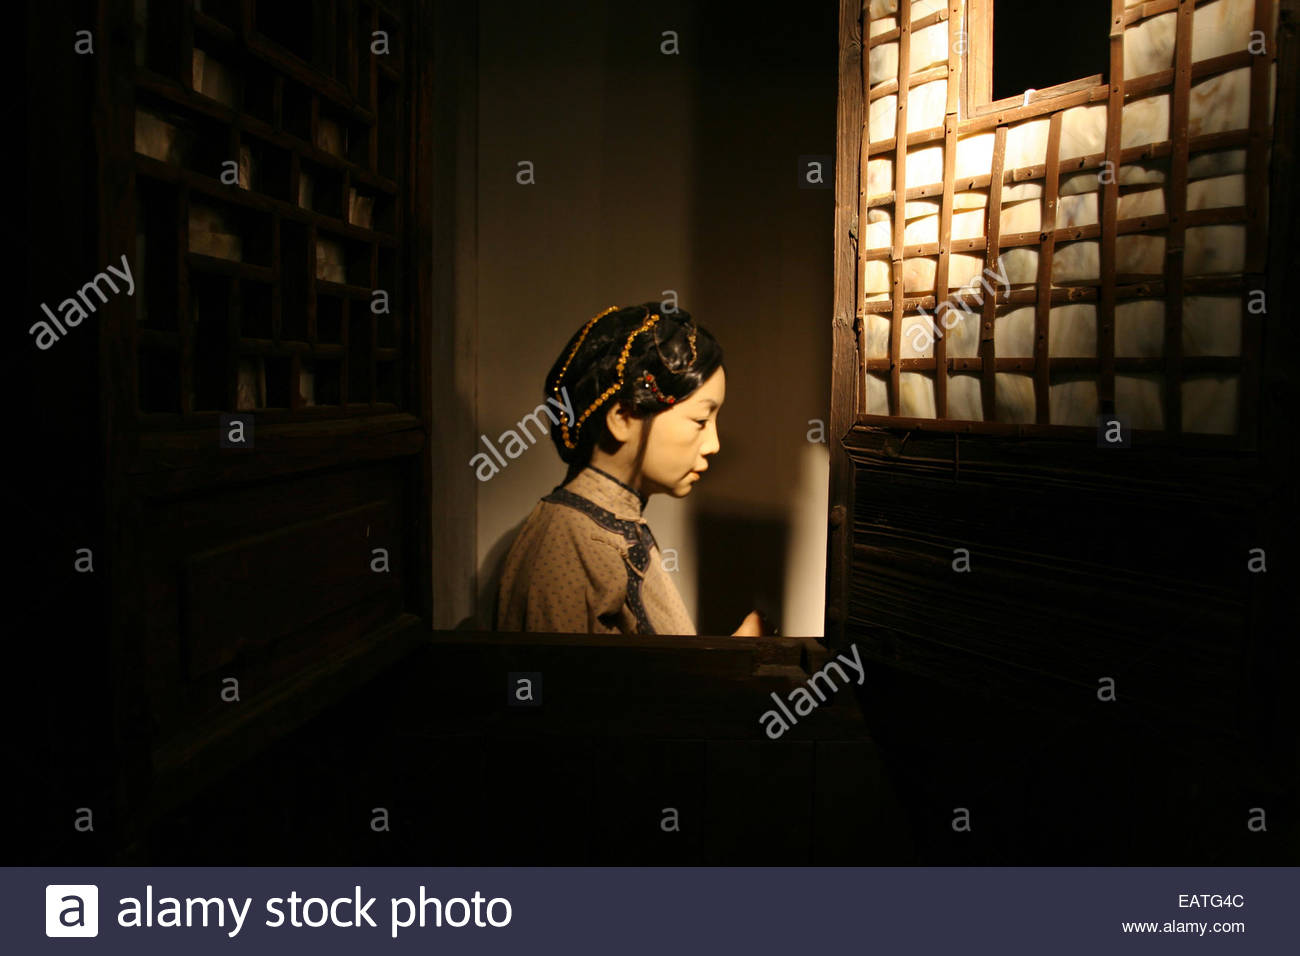 A wax model of a worker in the tourist centre in Wuzhen. - Stock Image